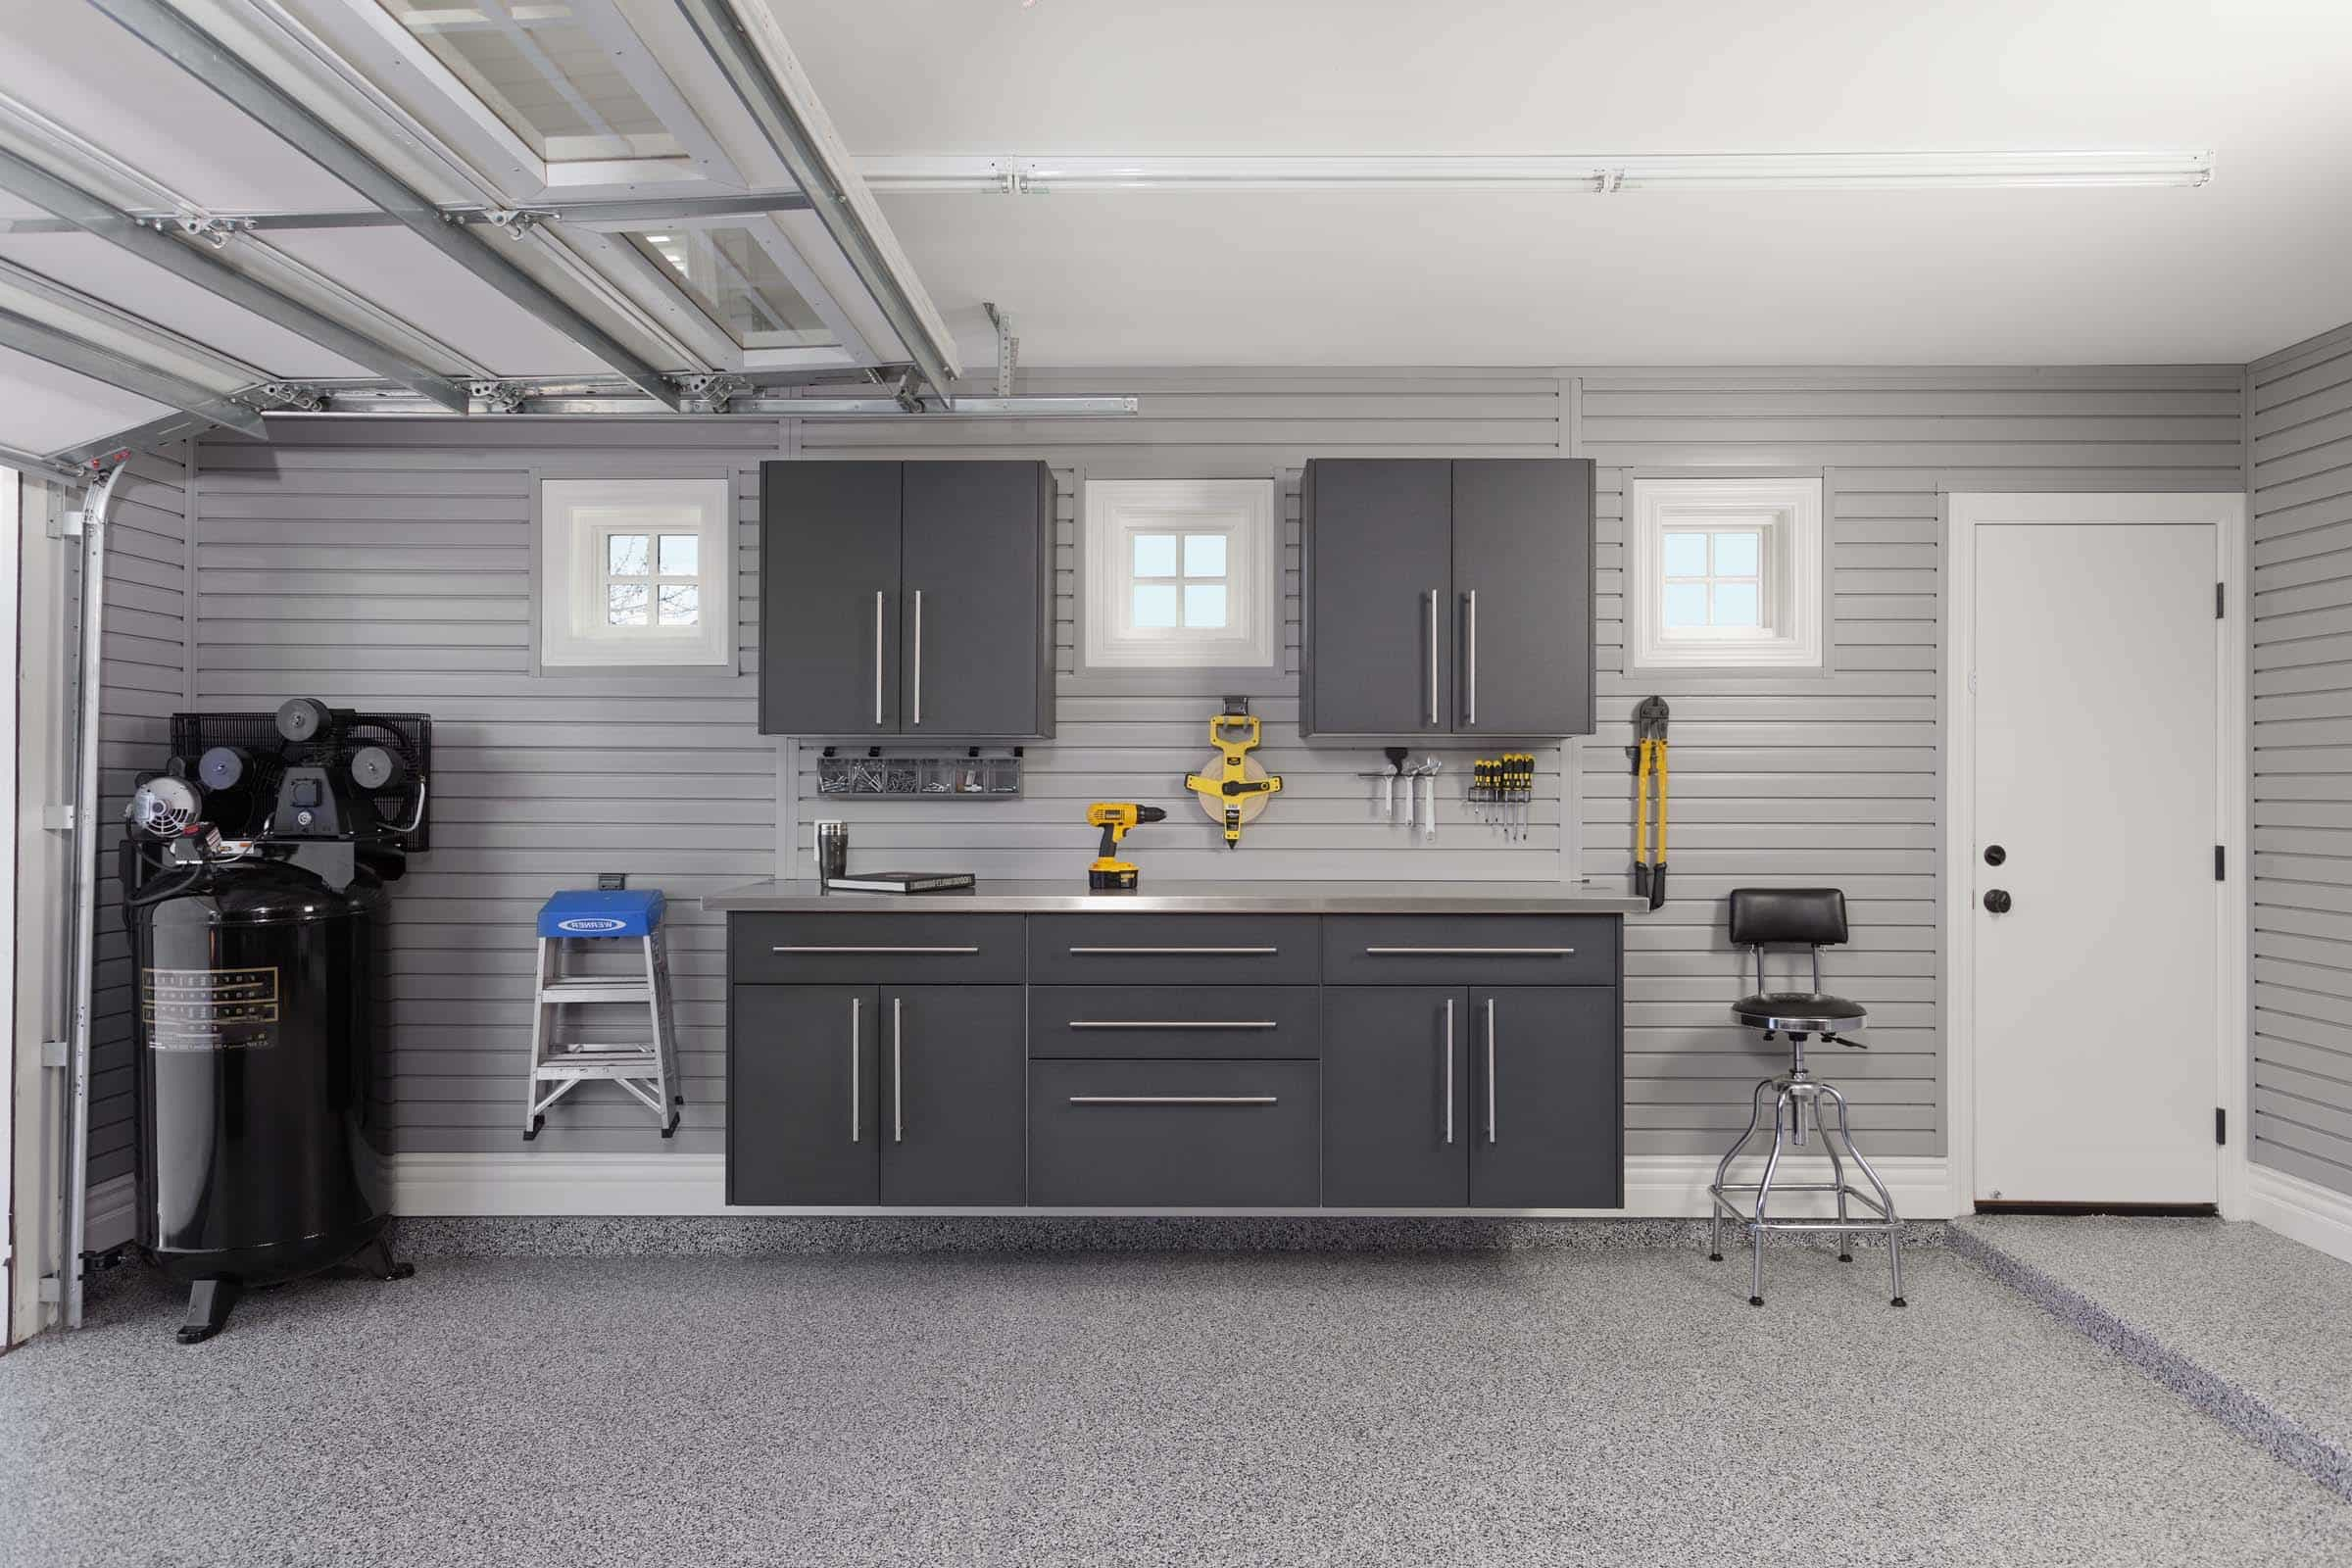 Contemporary Garage Interior With Modern Cabinet Storages And Shelves (View 3 of 10)